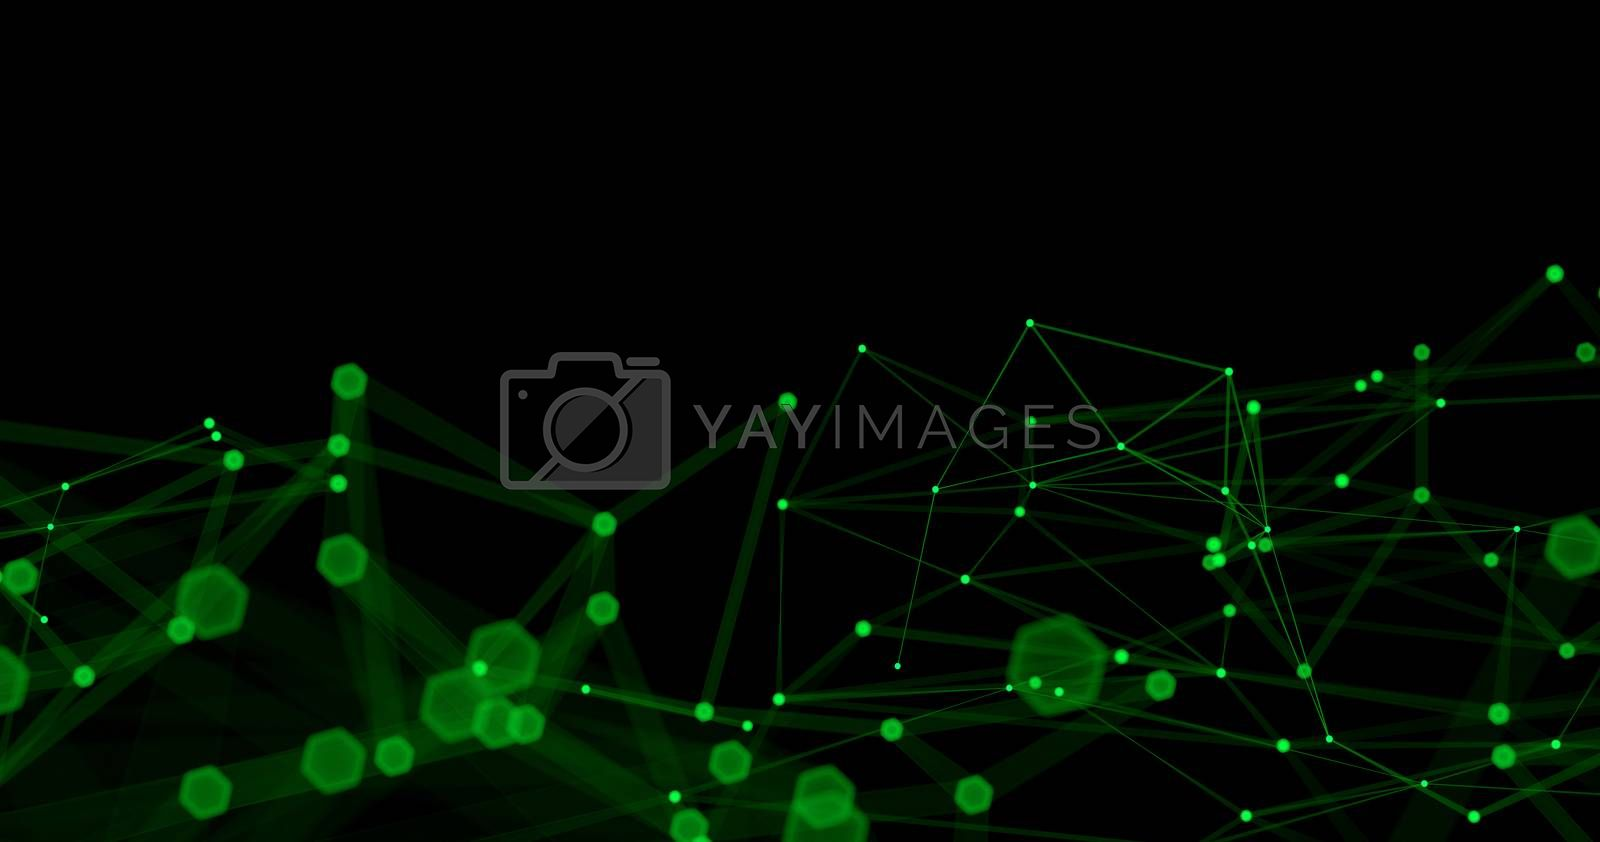 Abstract futuristic light wallpaper background design. Science dark pattern with structure mesh and lines. Modern business space triangular illustration with bokeh. 3D render by Shanvood